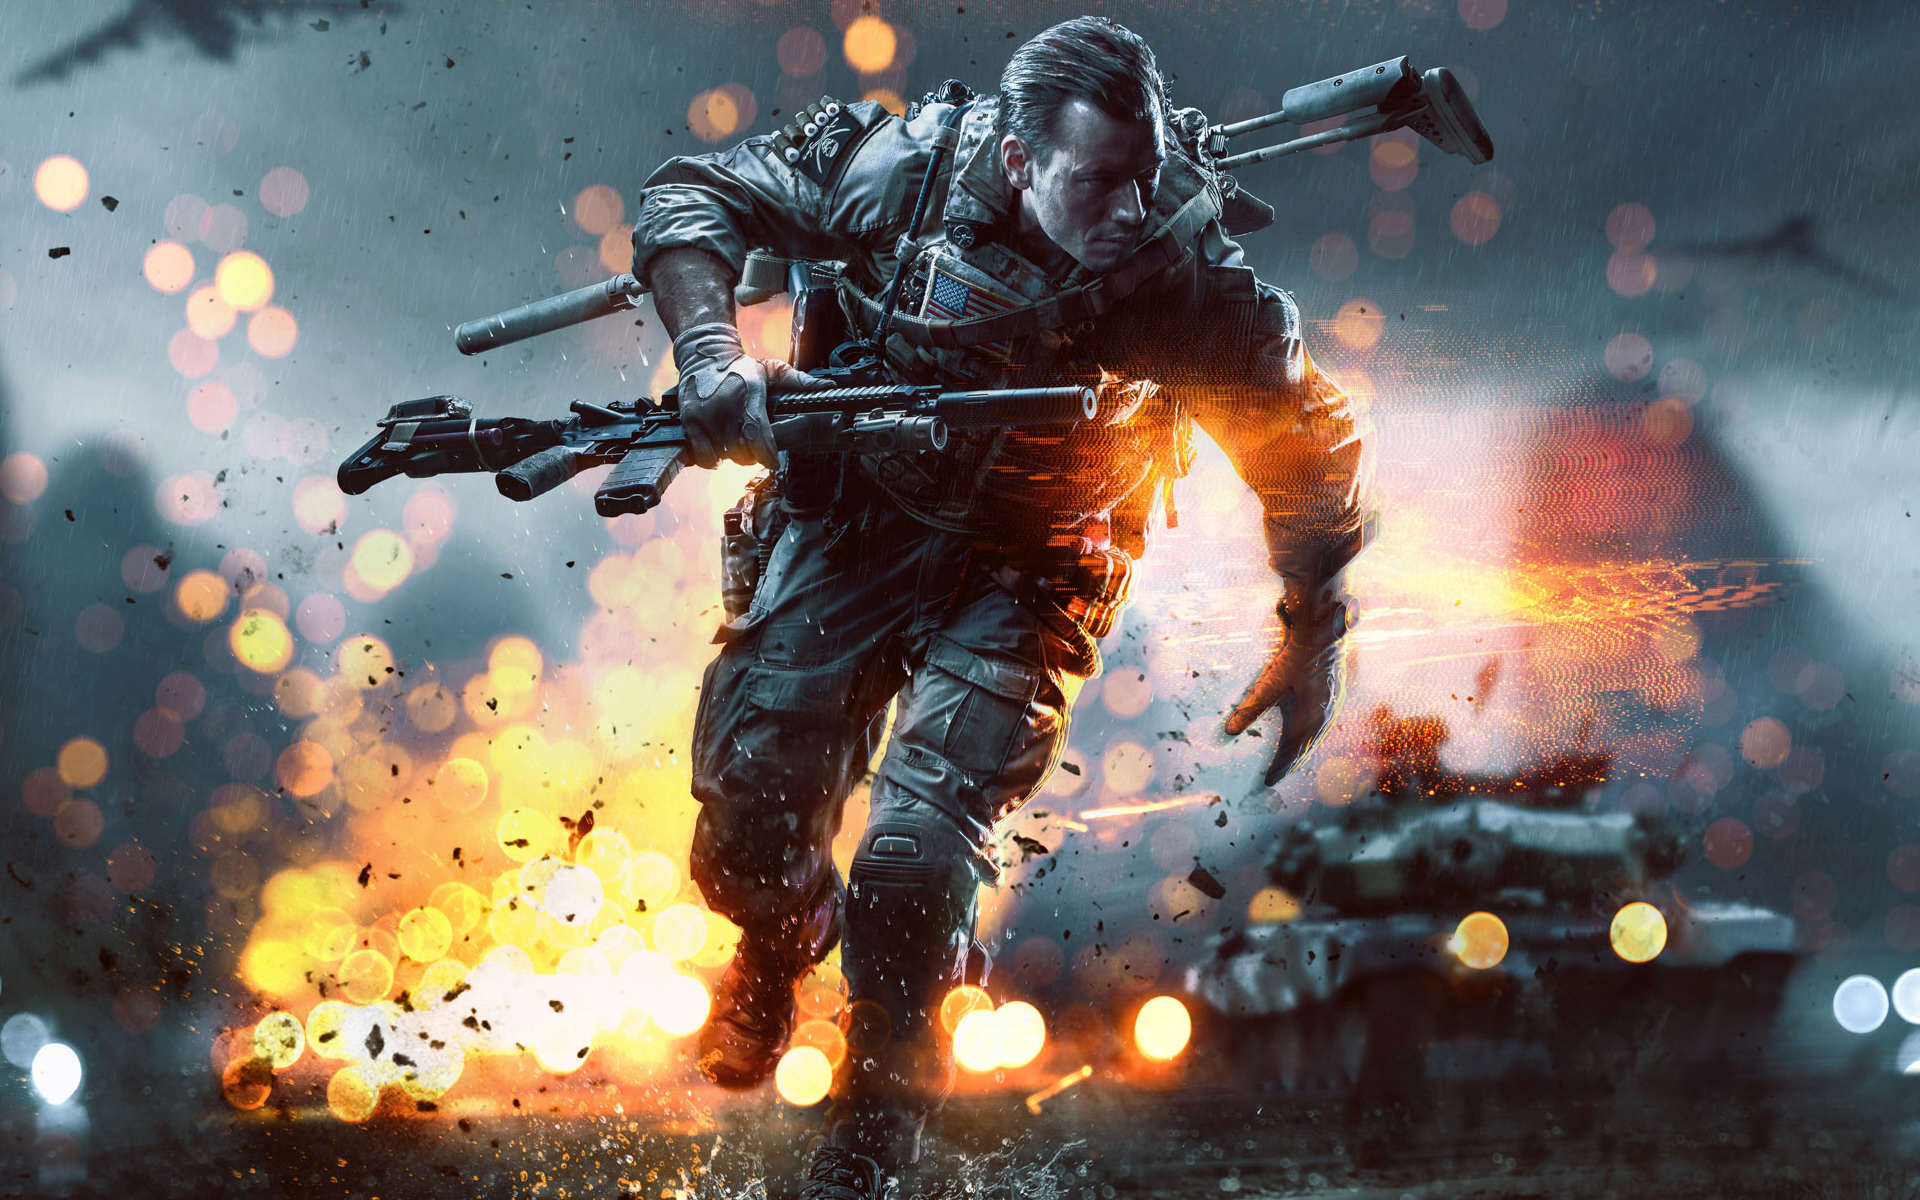 Battlefield TV Show In The Works, Heres What We Know battlefield 4 china rising wide